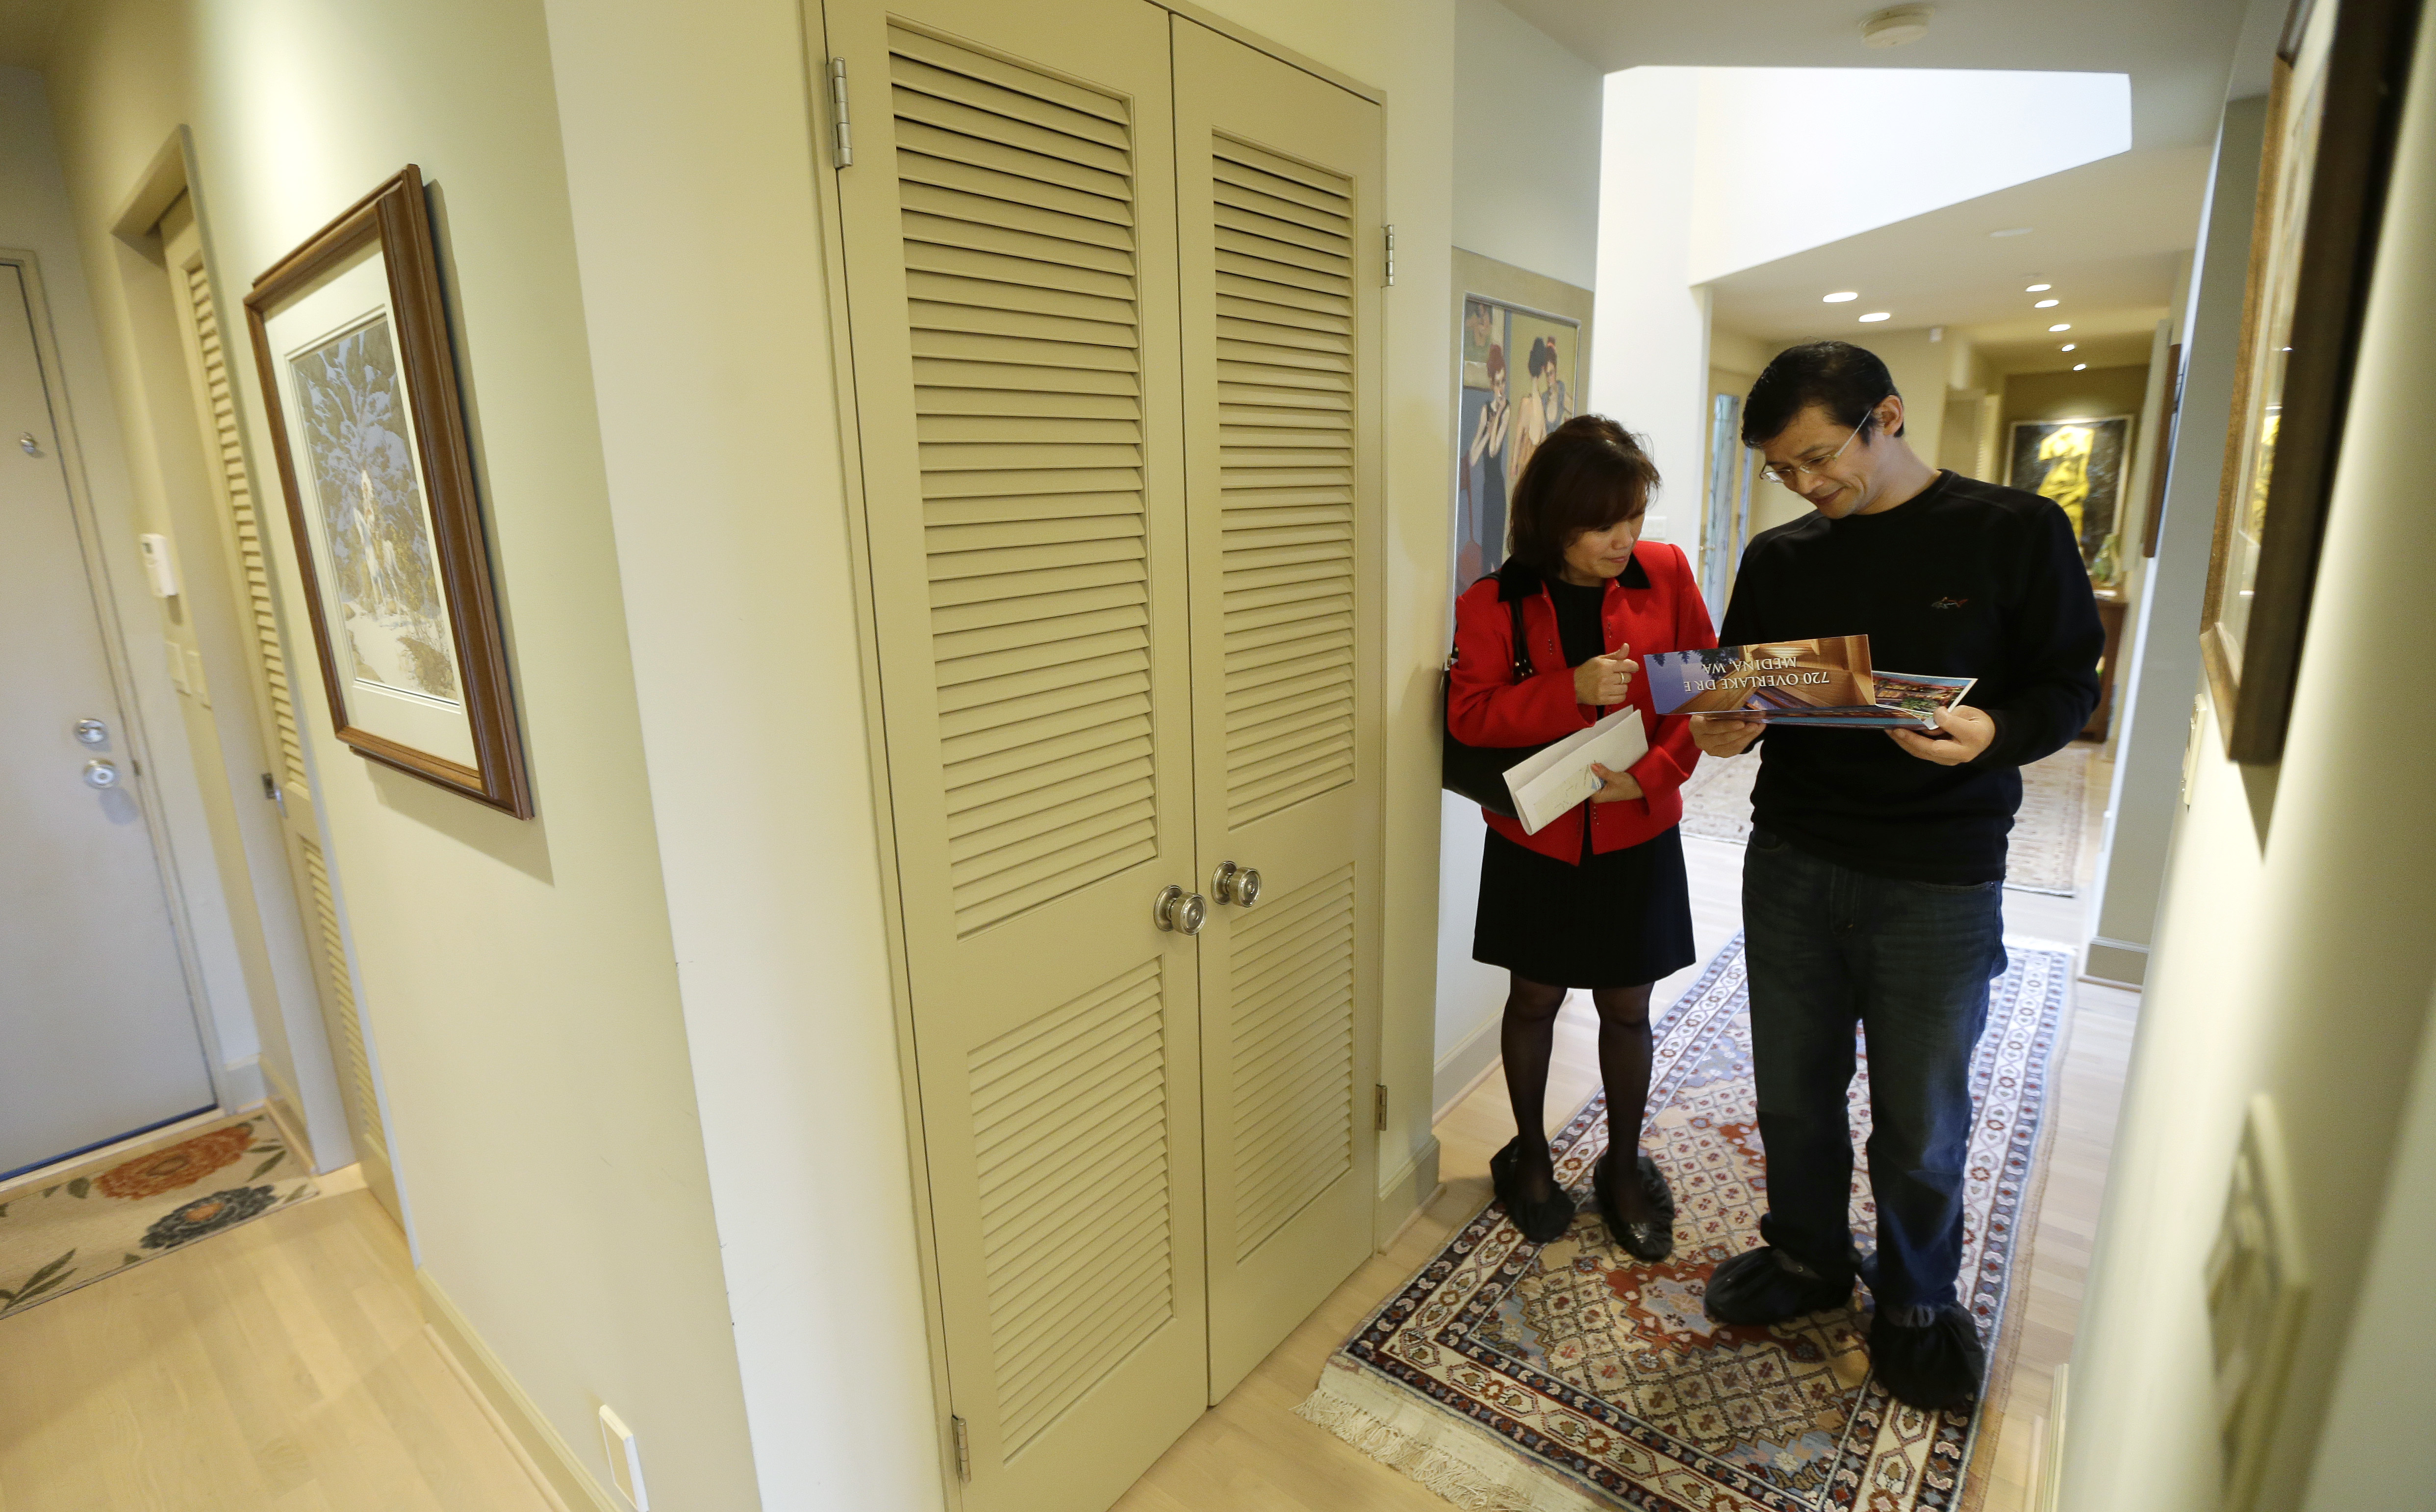 Janie Lee, left, a residential specialist with John L. Scott Real Estate, shows a home for sale to her client, Hongbin Wei, of Beijing, China, Thursday, Dec. 18, 2014, in Medina, Wash., near Seattle